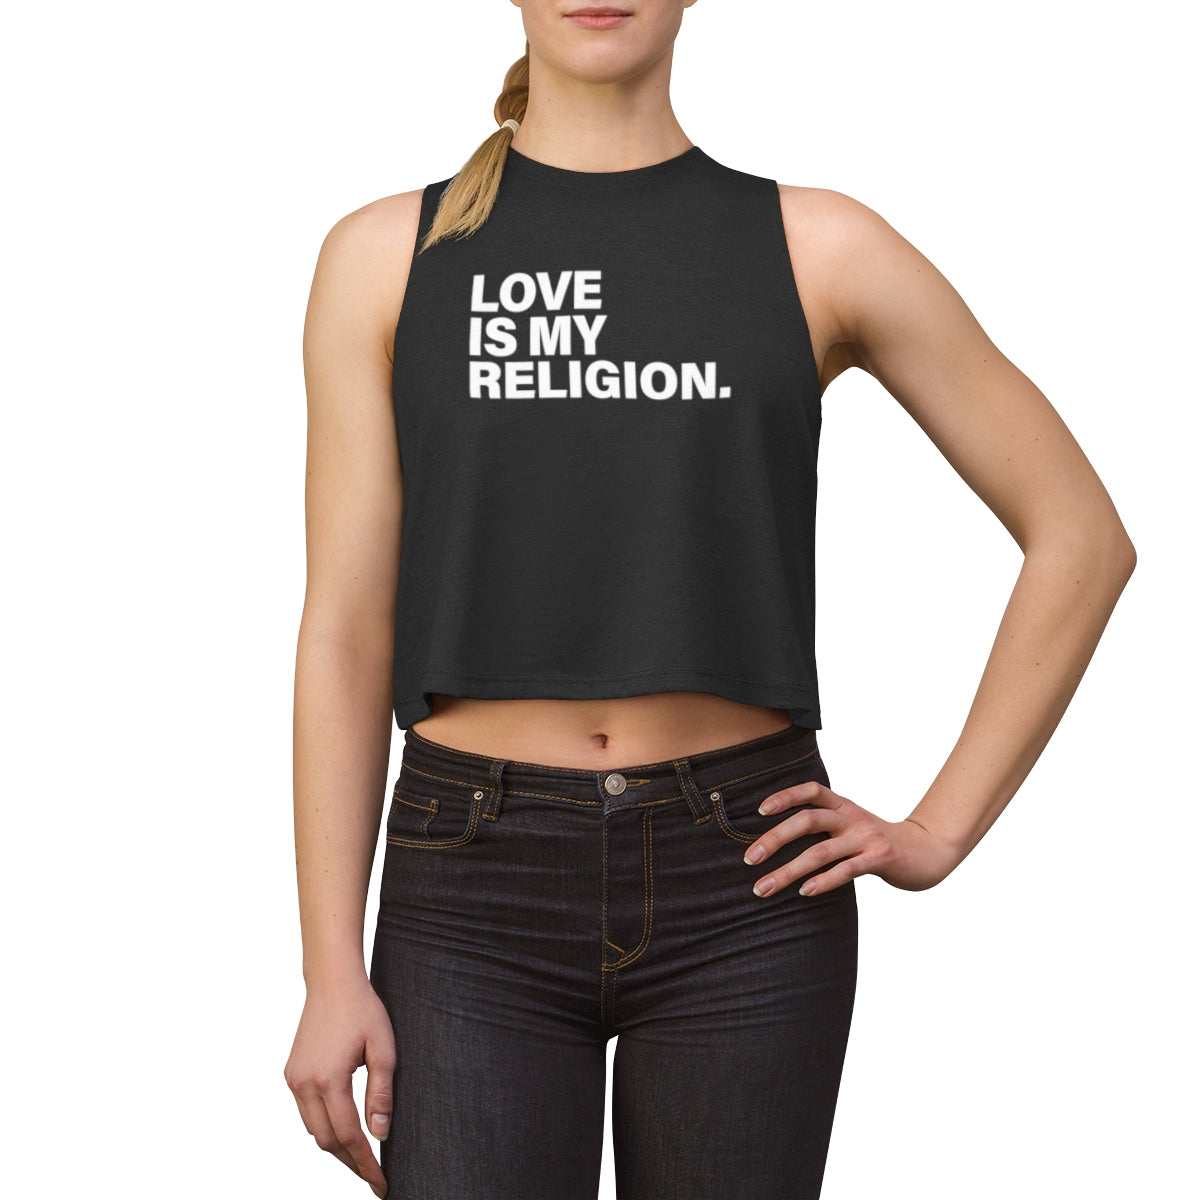 Love Is My Religion Women's Crop top